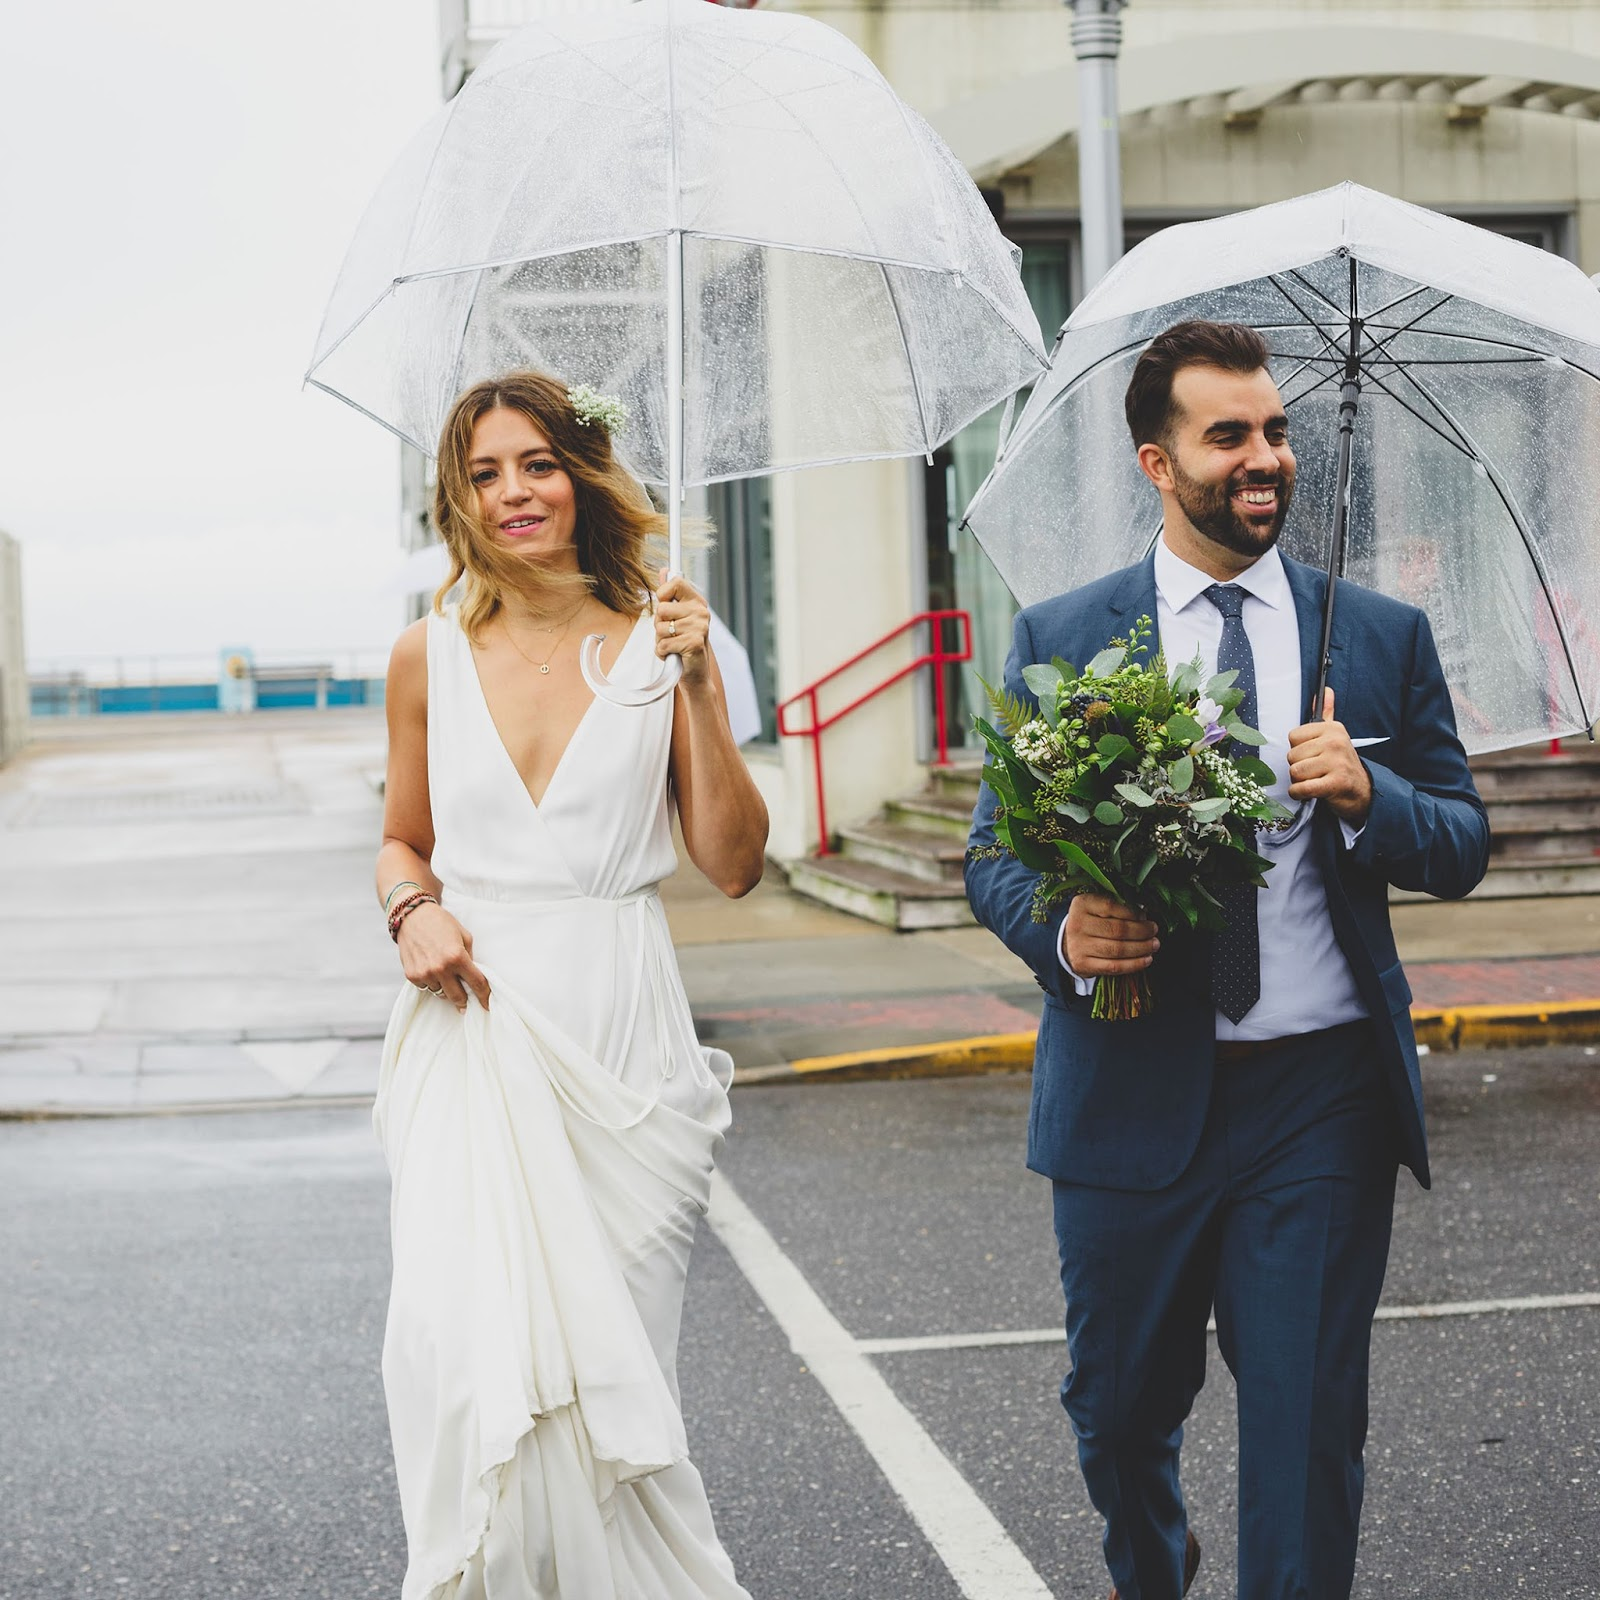 Intimate Asbury Park Wedding photos in the rain | blog.cassiecastellaw.com